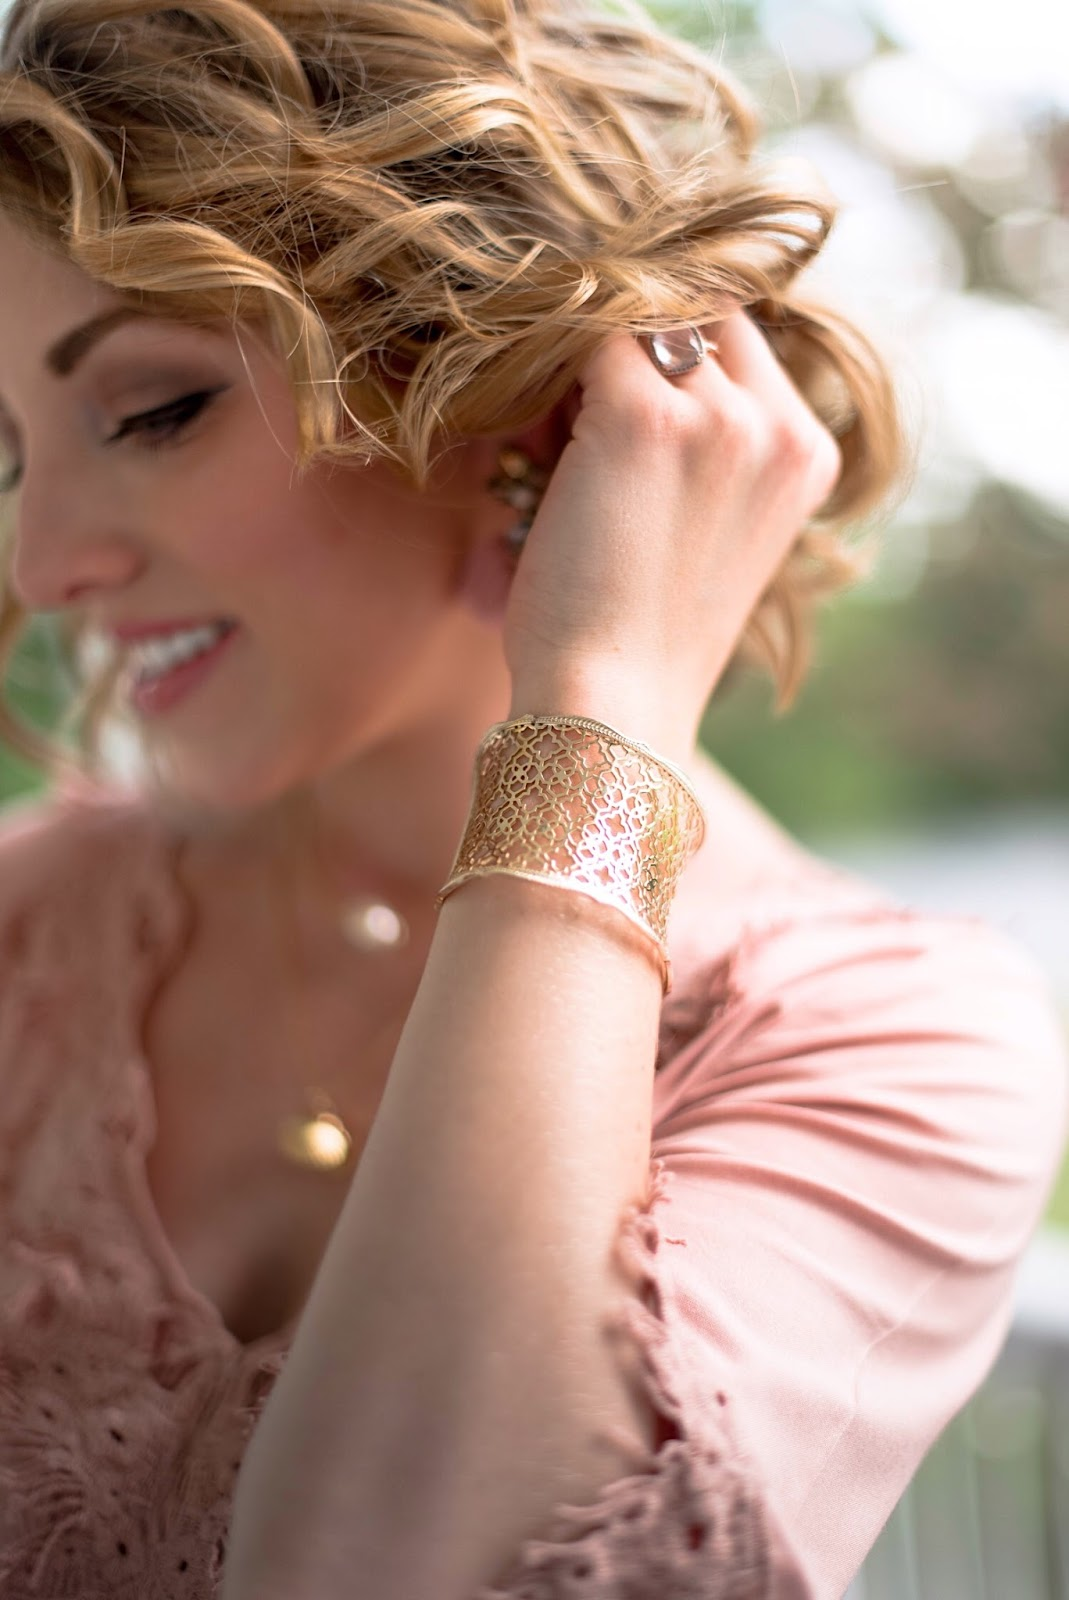 Kendra Scott Cuff - Click through to see more on Something Delightful Blog!